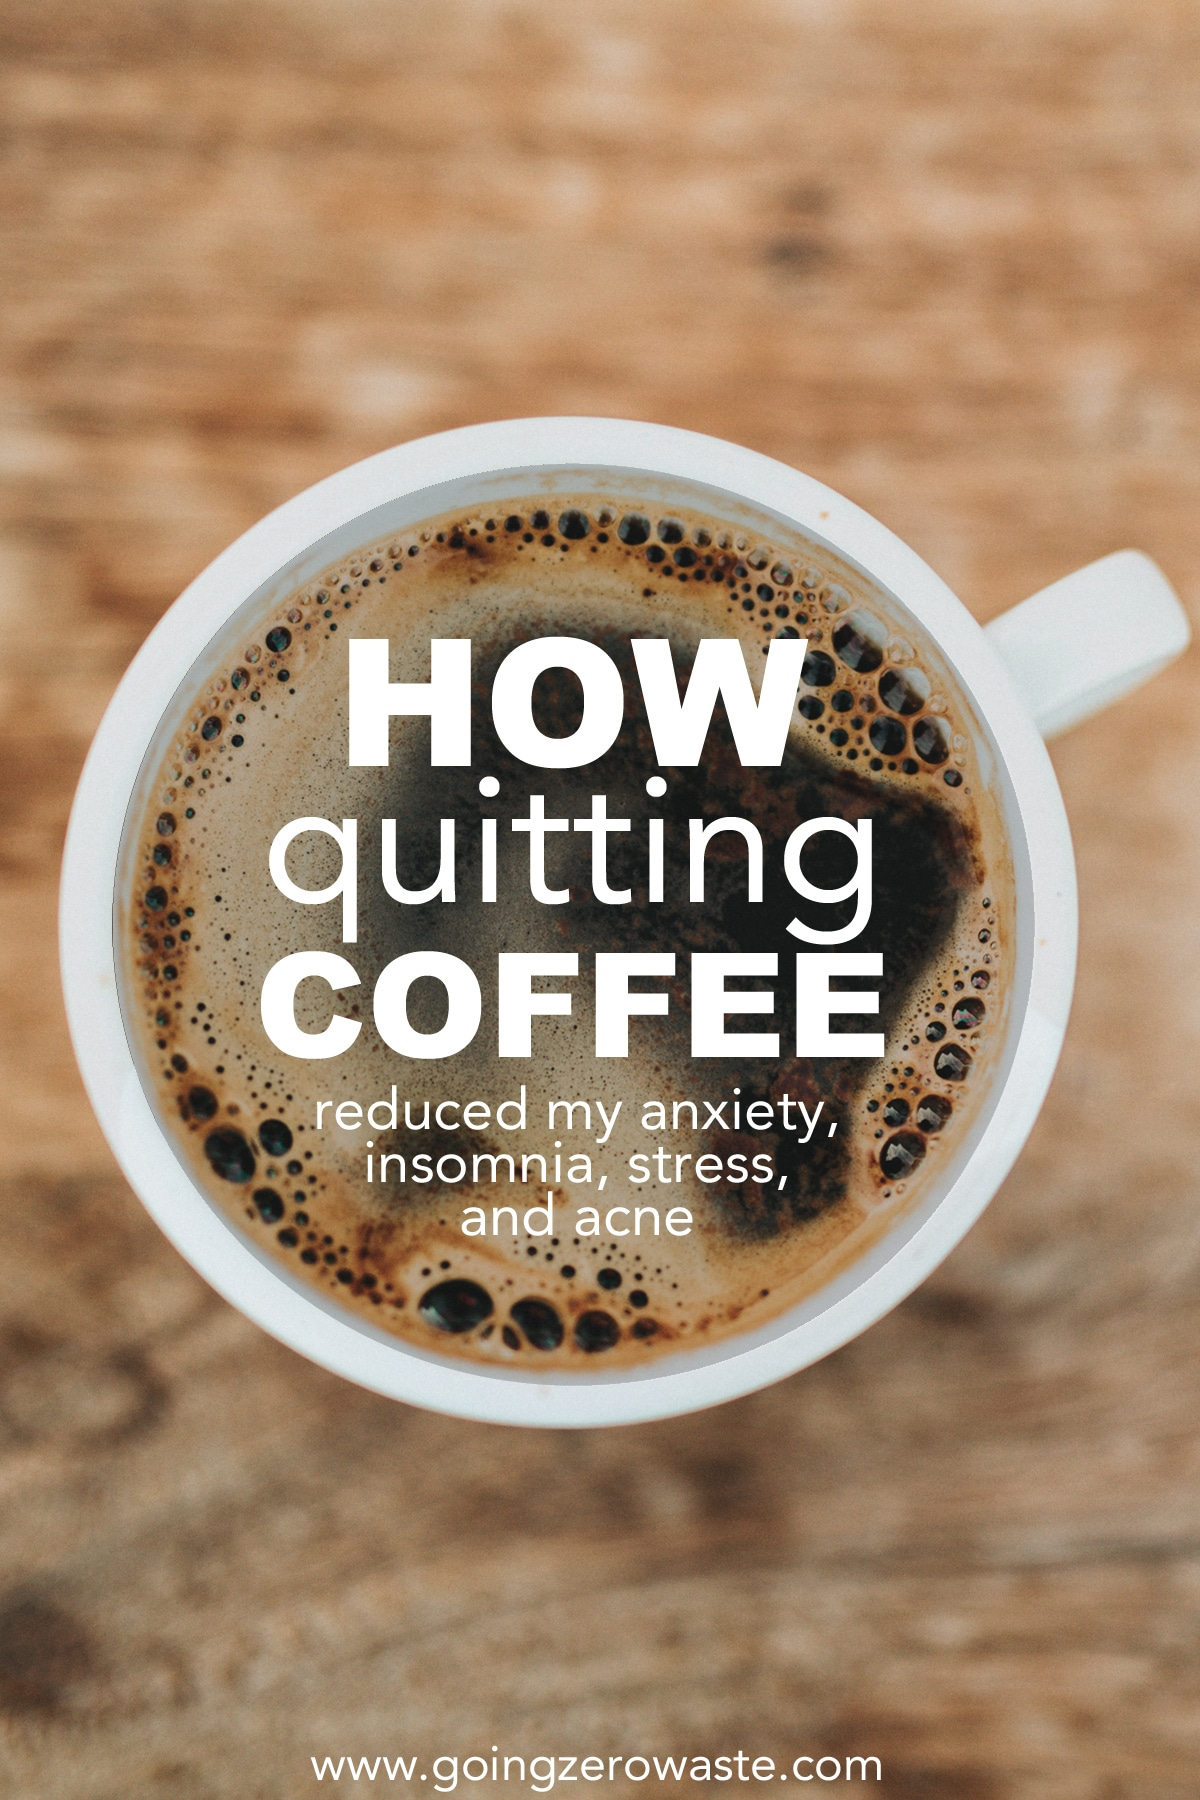 How to Quit Coffee and Caffeine